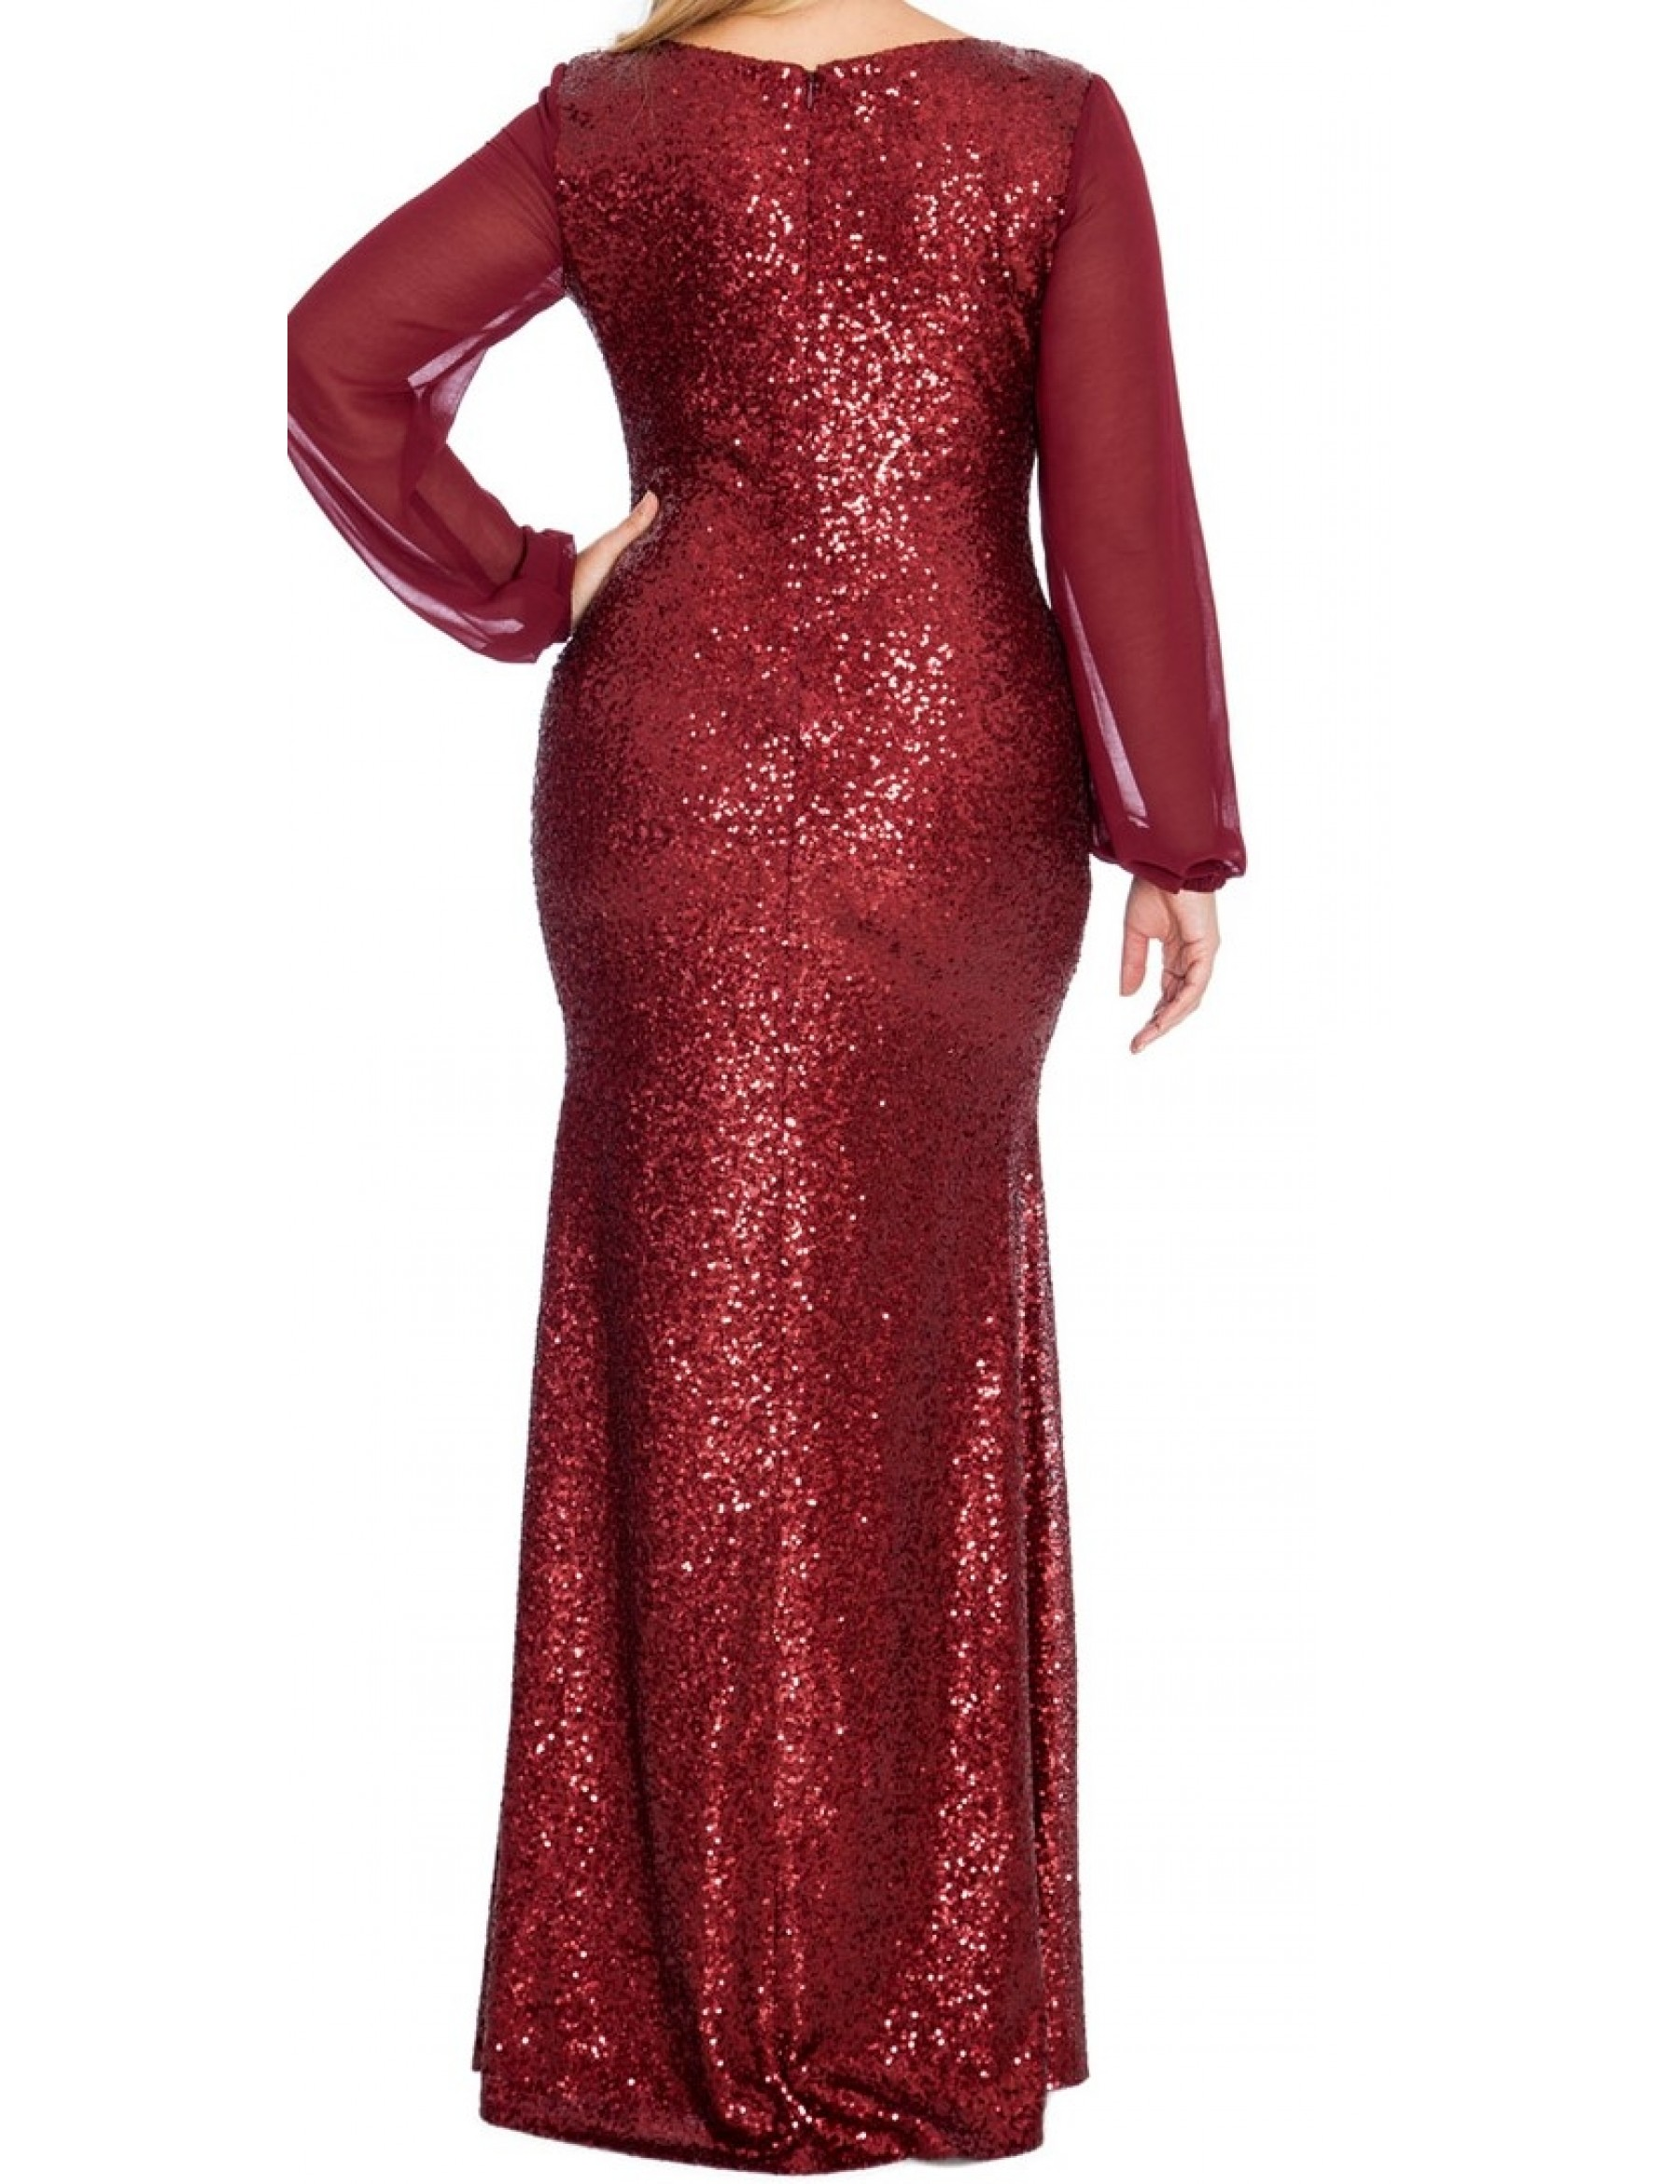 Long Sleeve Chiffon Sequin Evening Dress